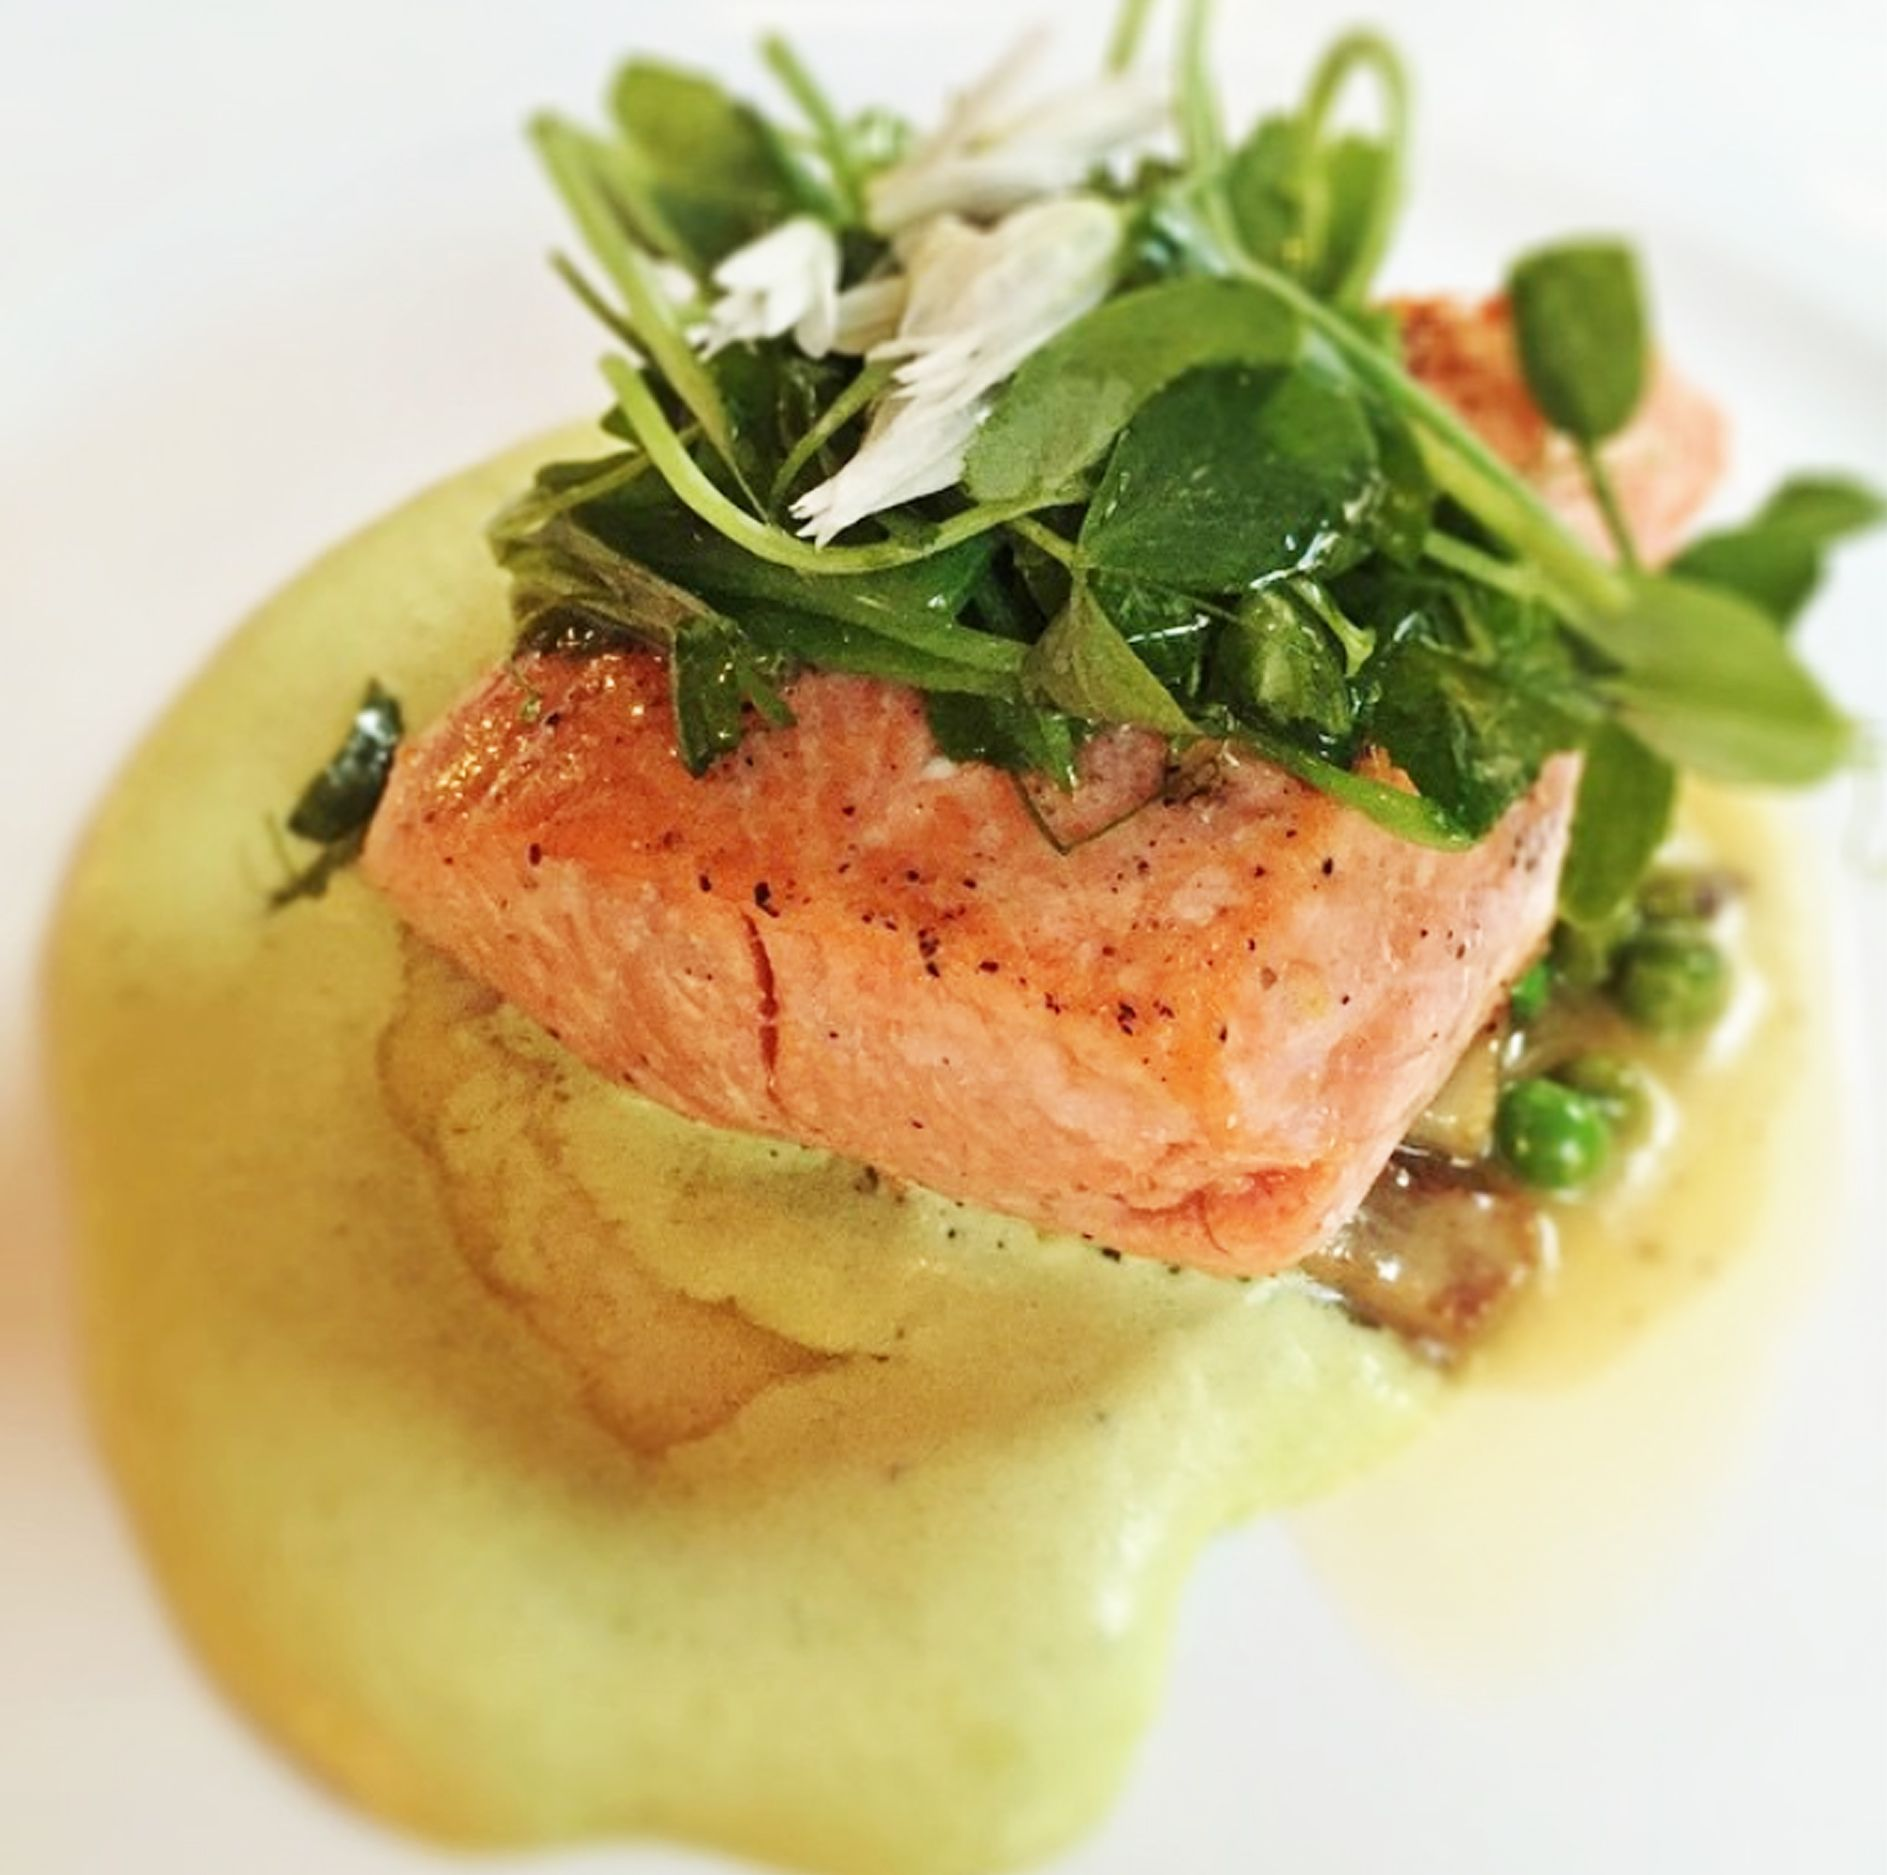 Another great photo taken by @me_andmybigmouth! This time it's of our Salmon with English peas, morels, and spring onion-lardo vinaigrette.